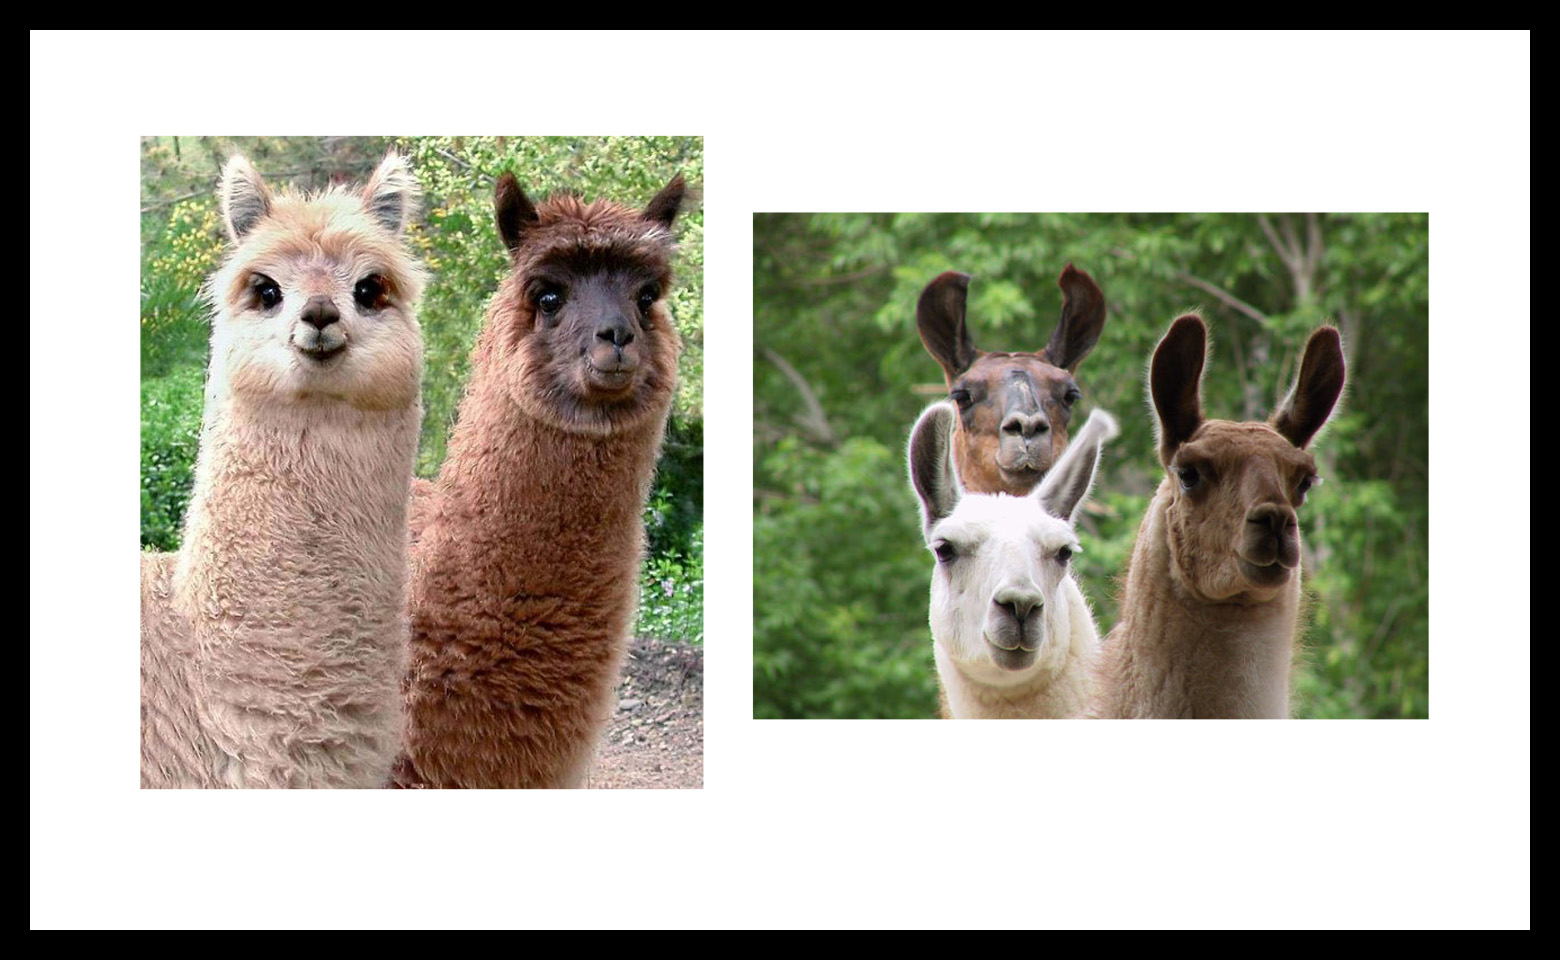 Llama Or Alpaca – Can You Tell The Difference?